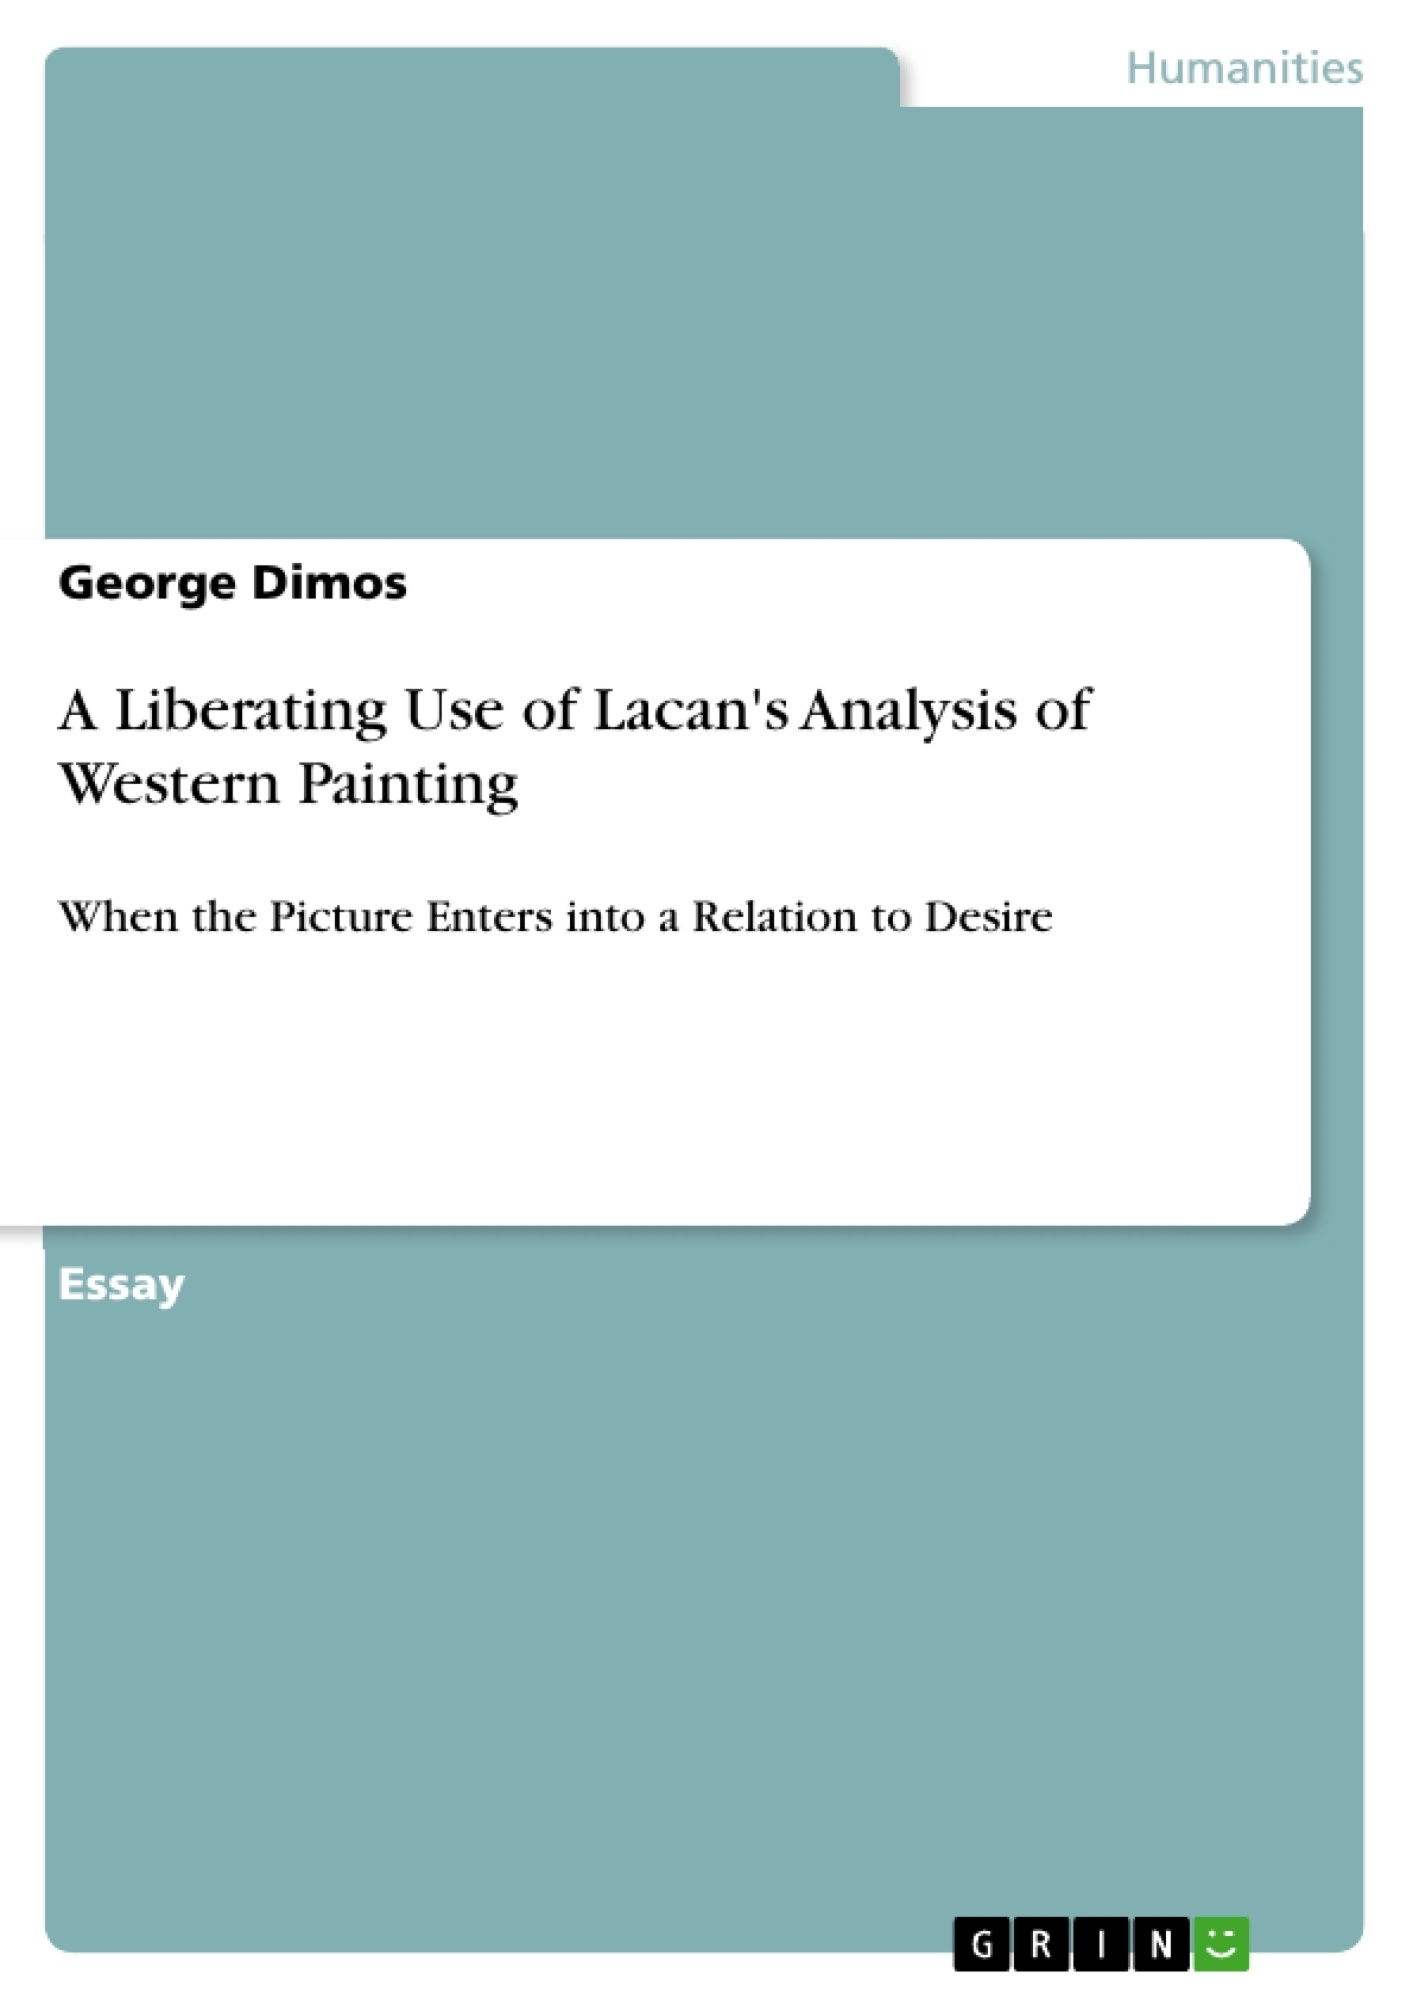 Title: A Liberating Use of Lacan's Analysis of Western Painting